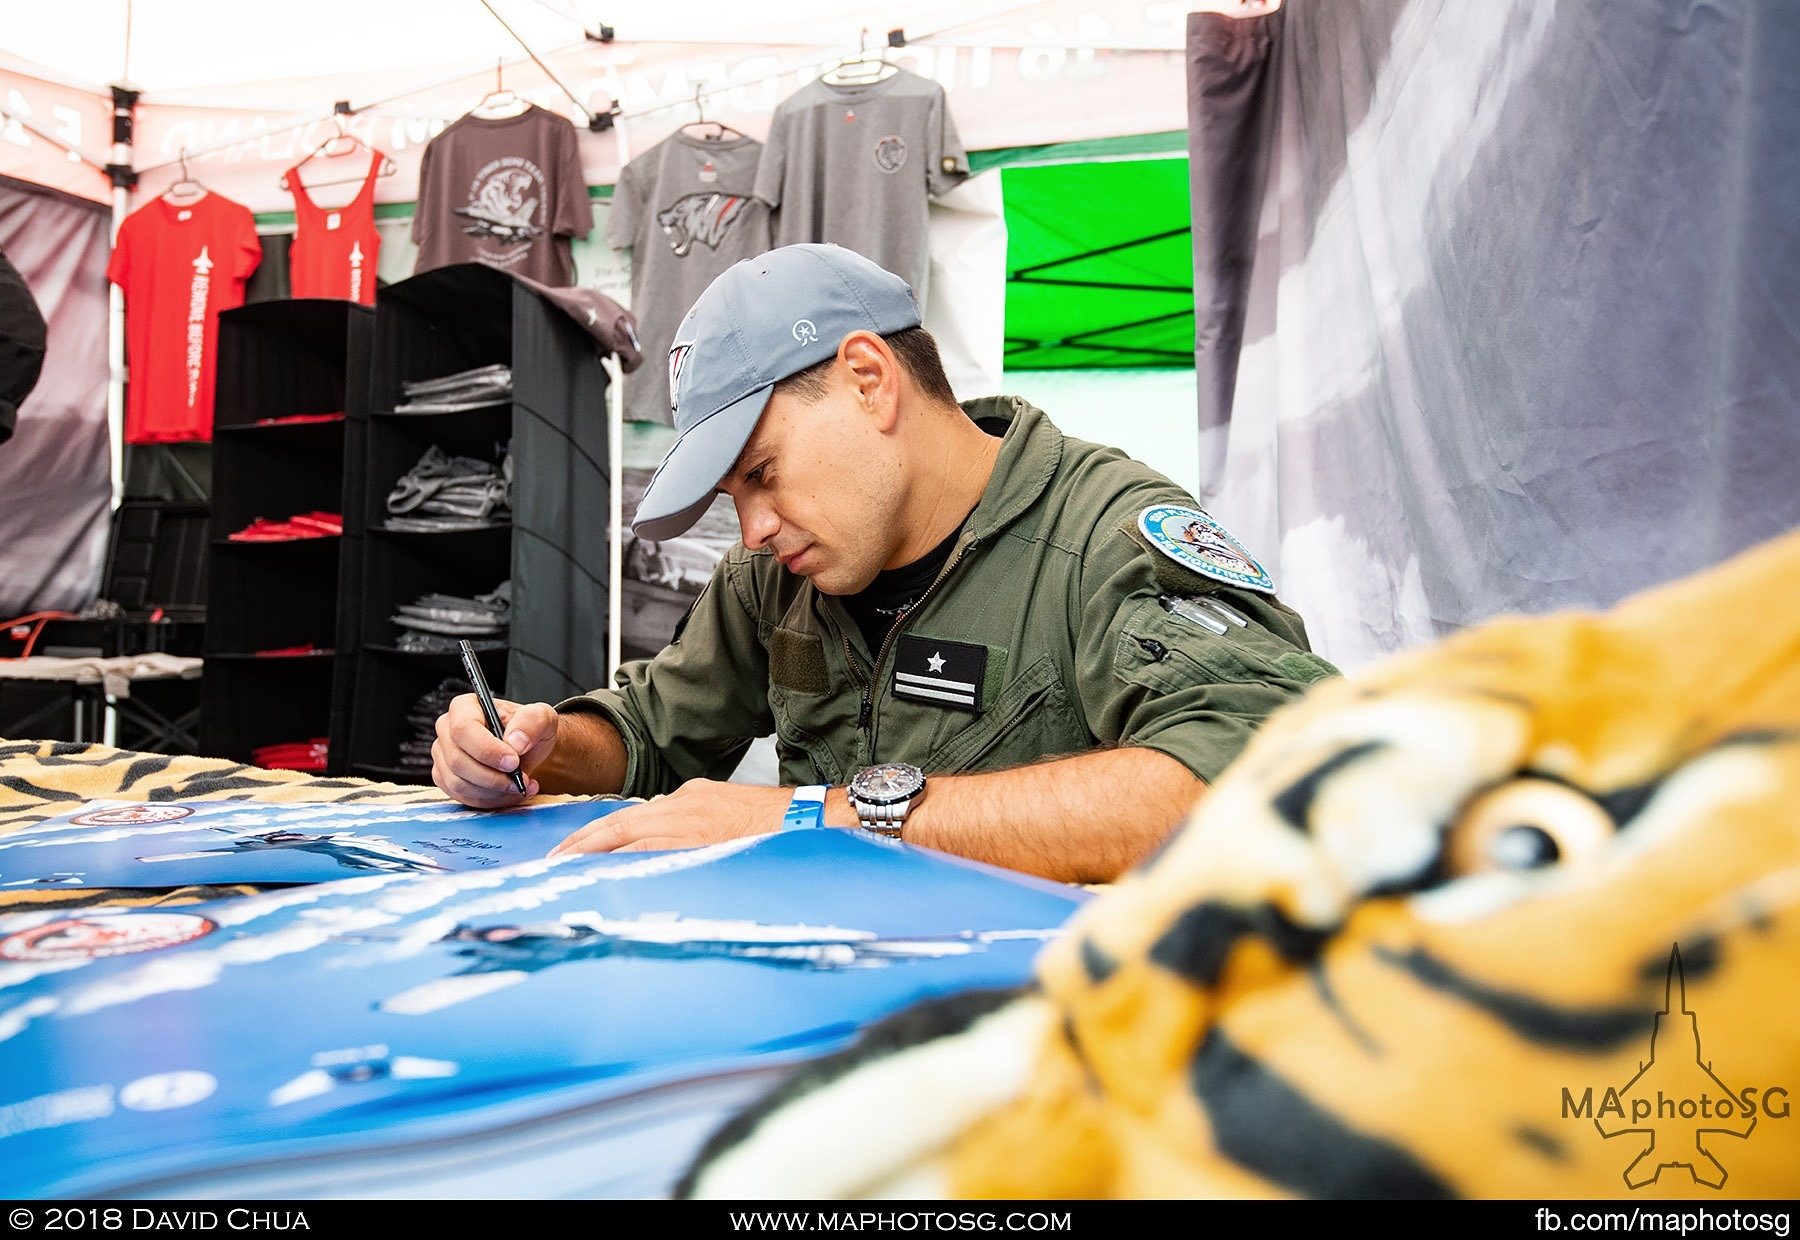 07. Signing the posters for fans of the Polish Air Force F-16 Tiger Demo Team